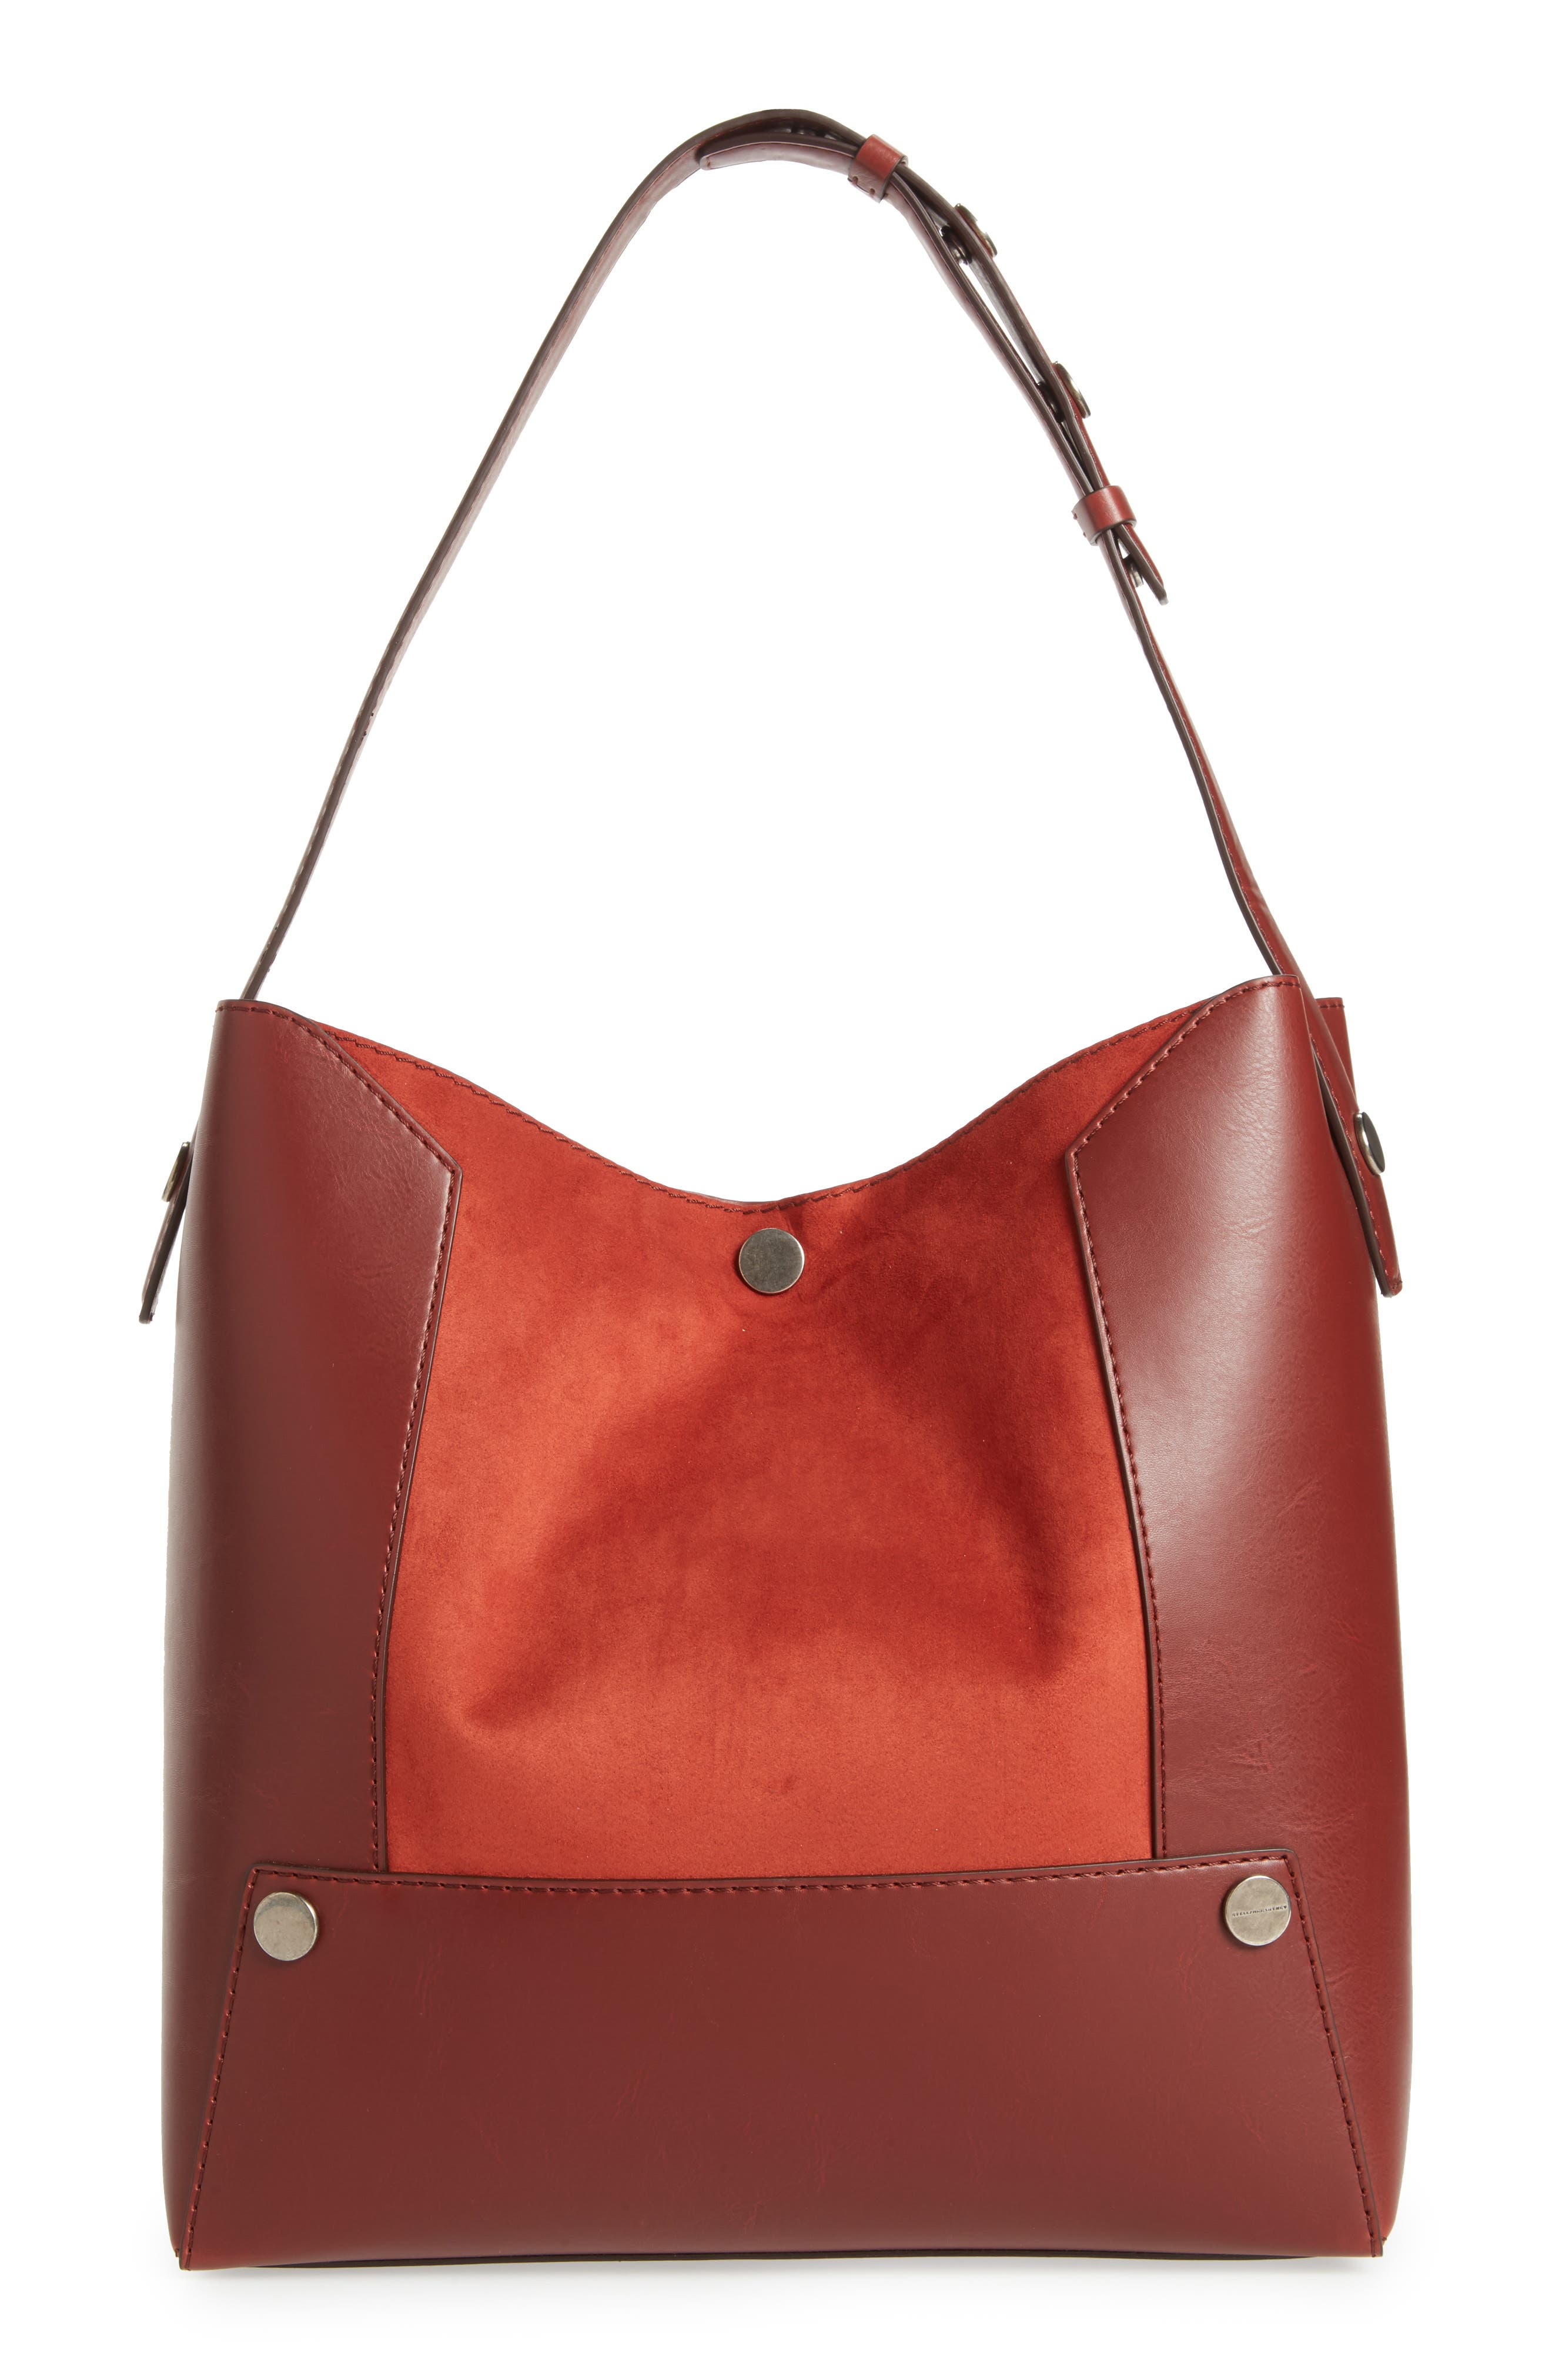 Alternate Image 1 Selected - Stella McCartney Small Faux Leather Bucket Bag